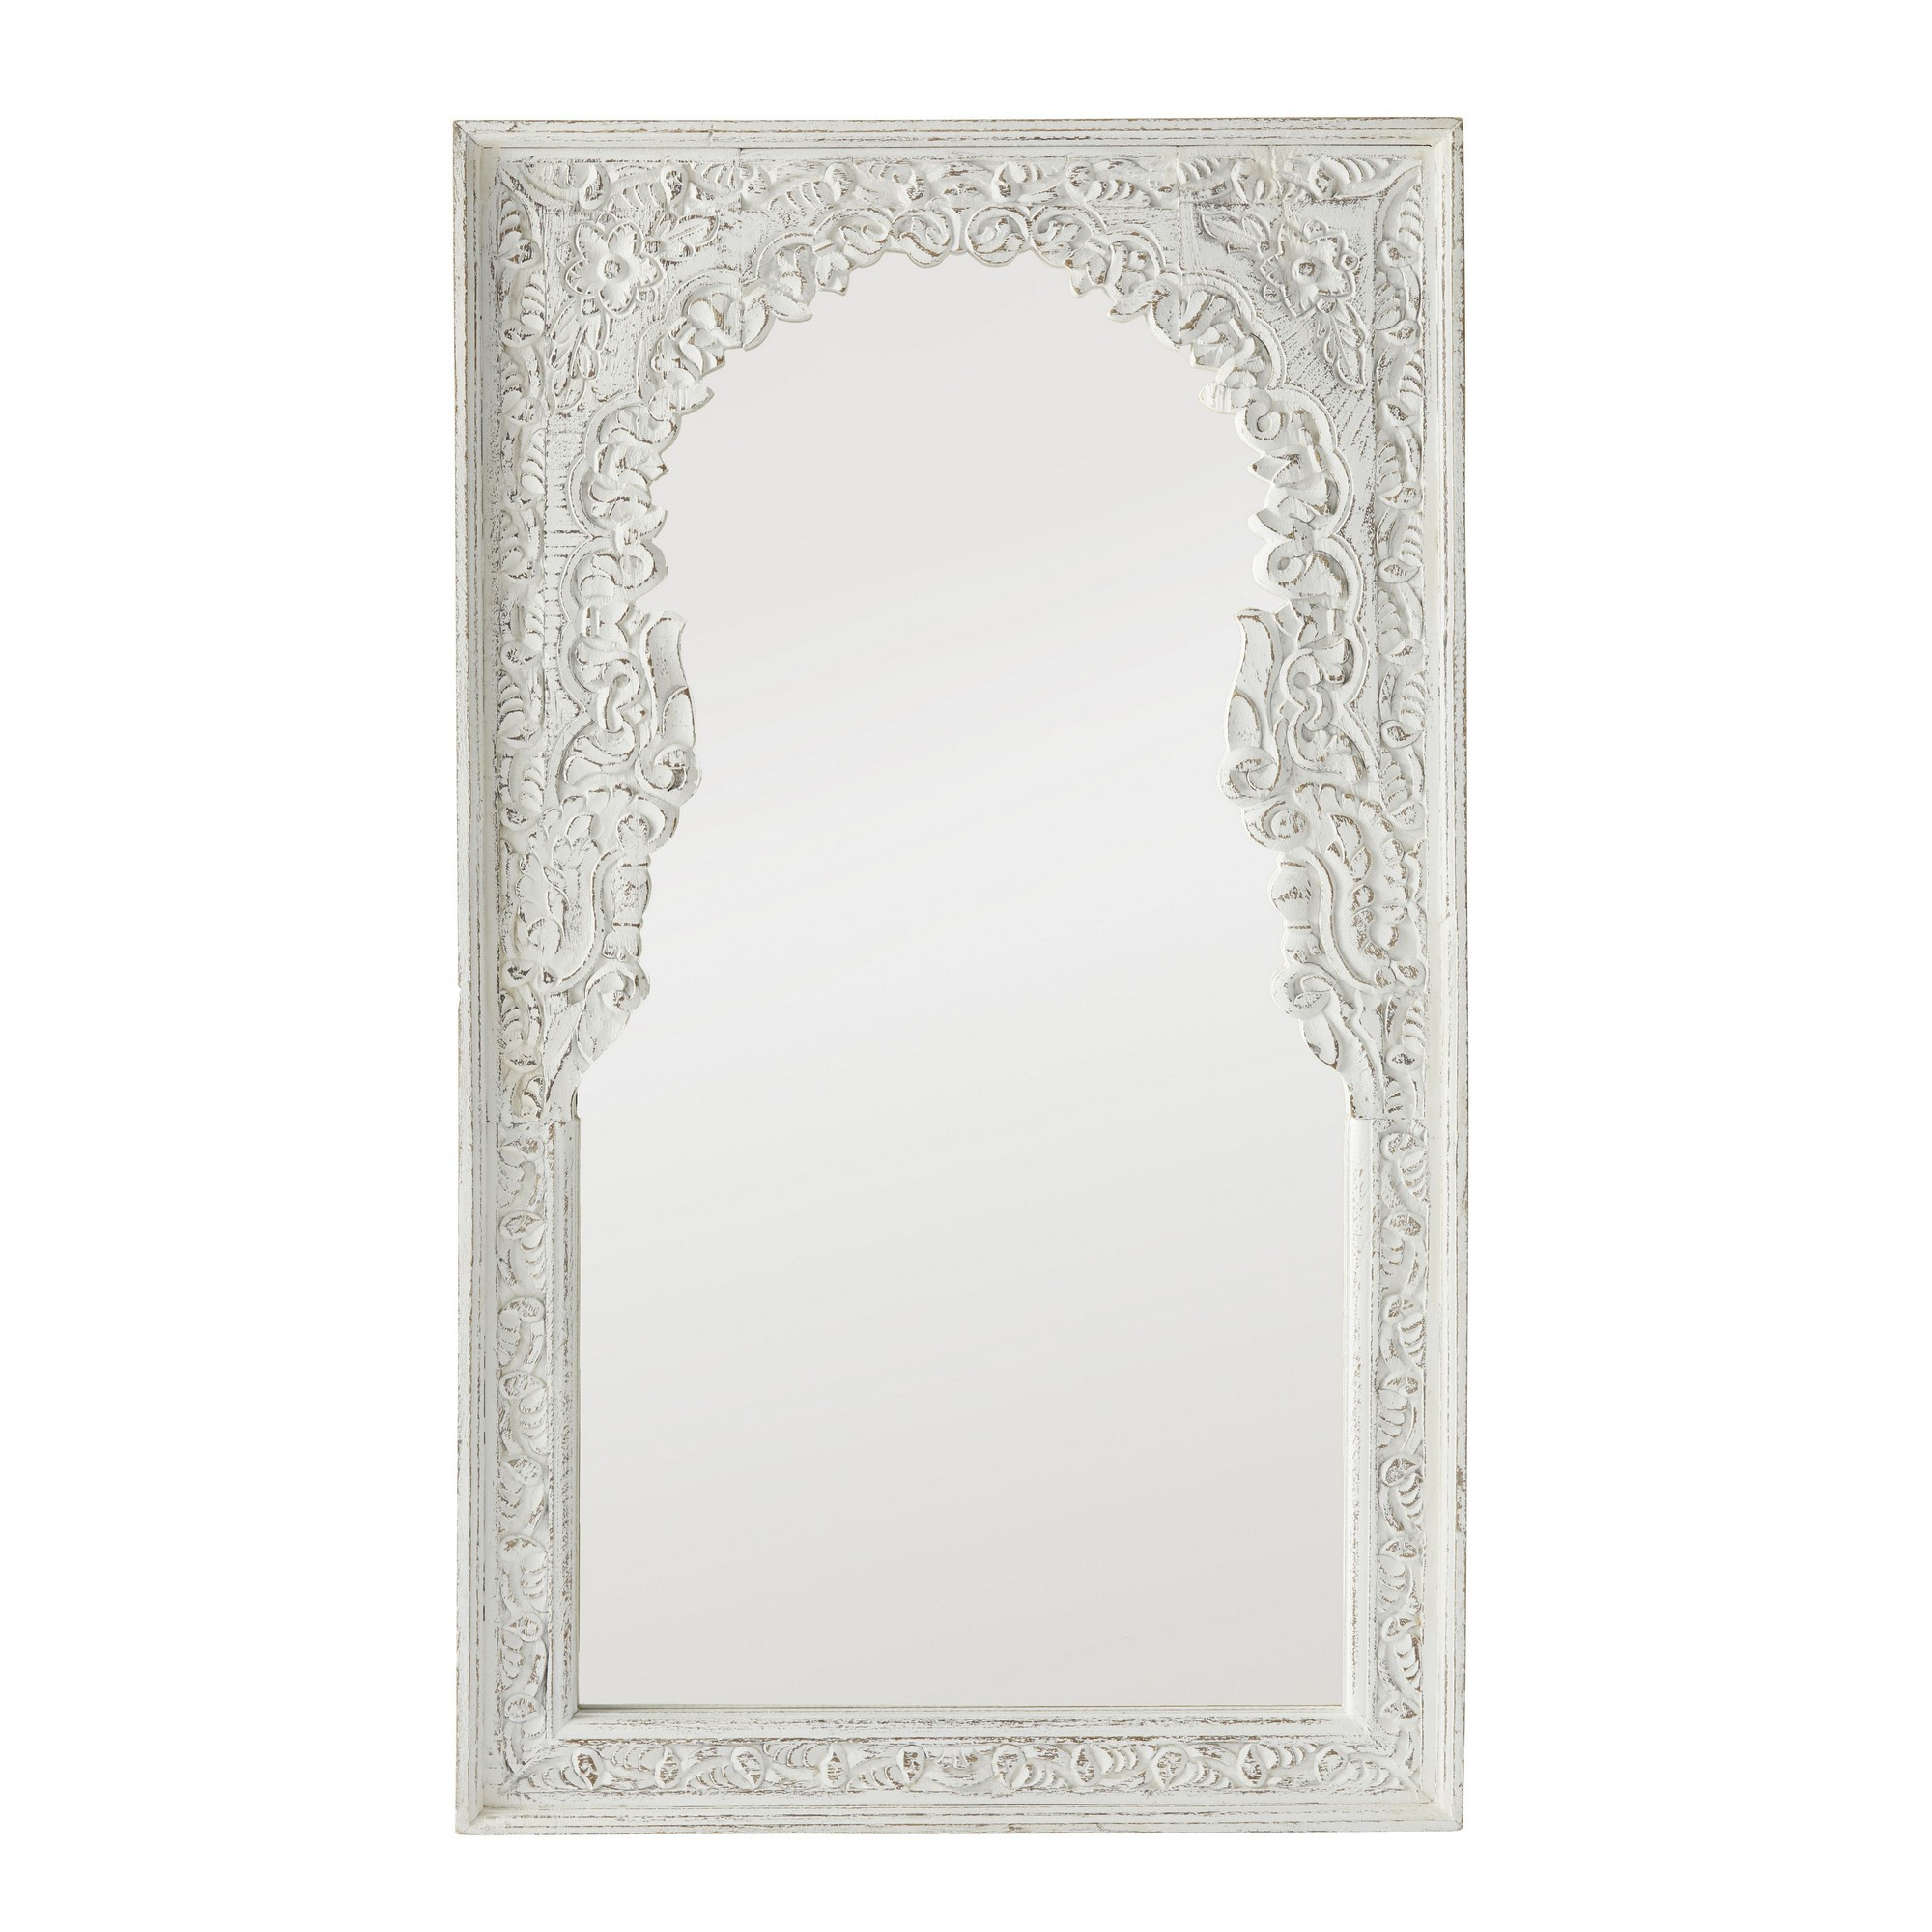 Rathi Carved Mango Wood Frame Wall Mirror, 121cm